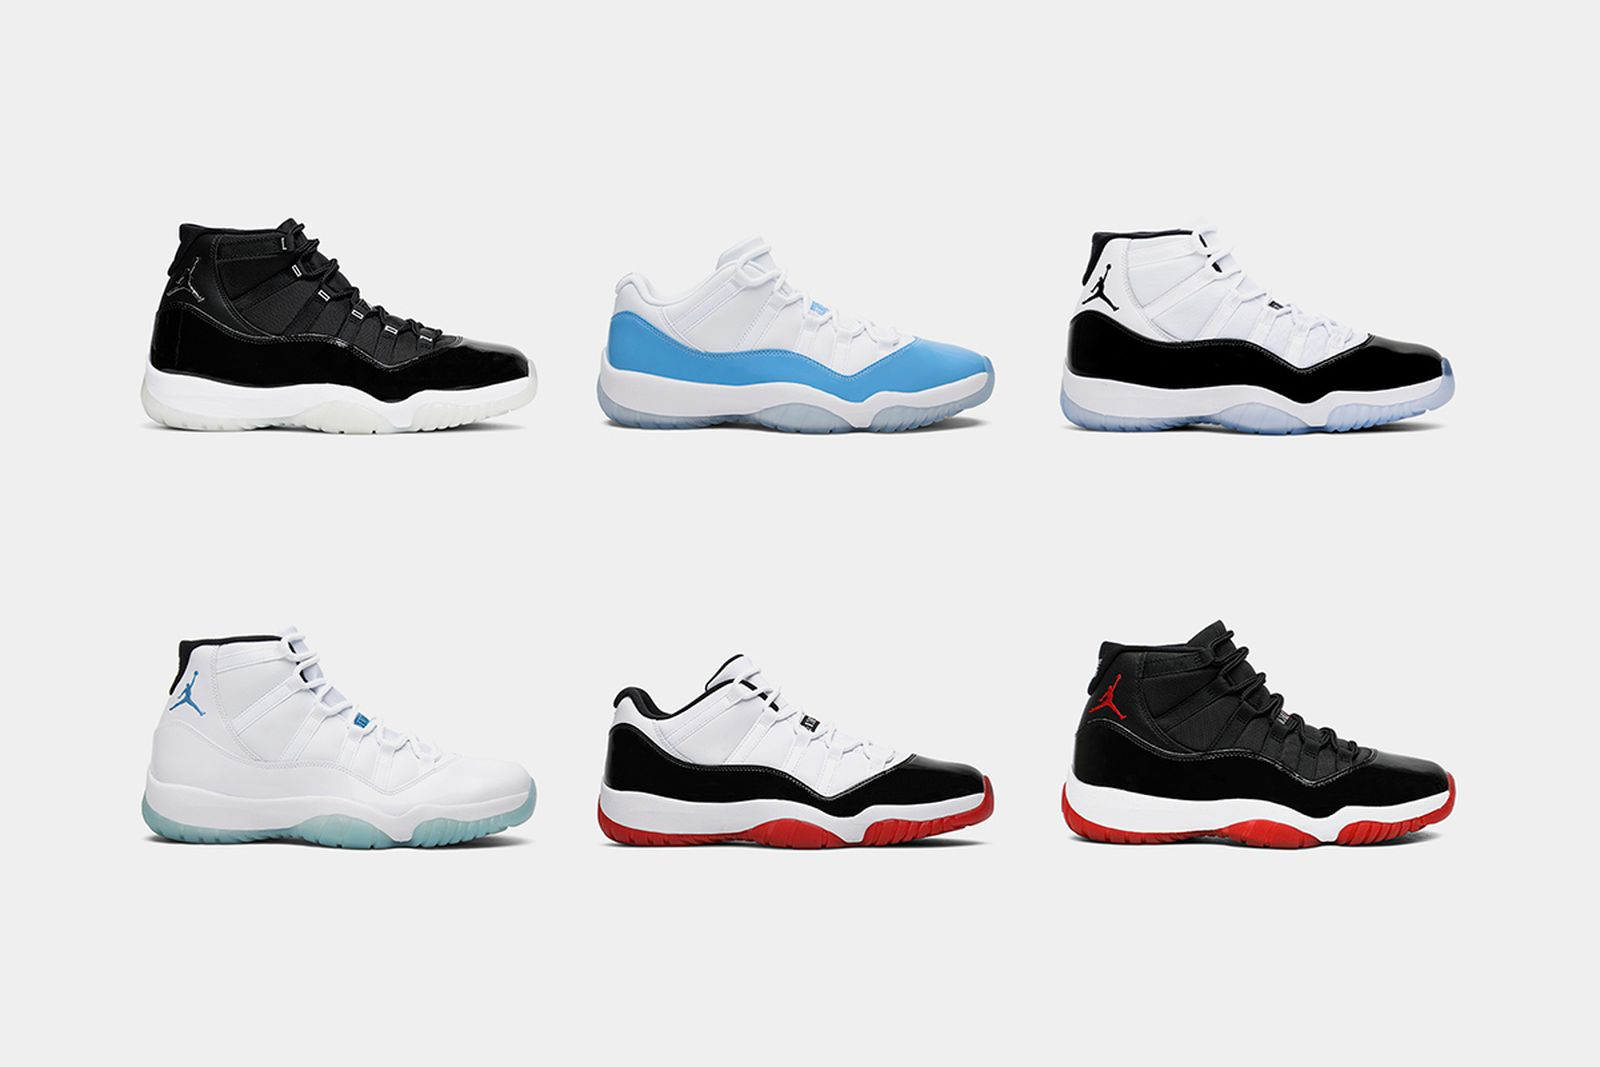 Air Jordan 11: The Best Colorways of the Iconic Silhouette